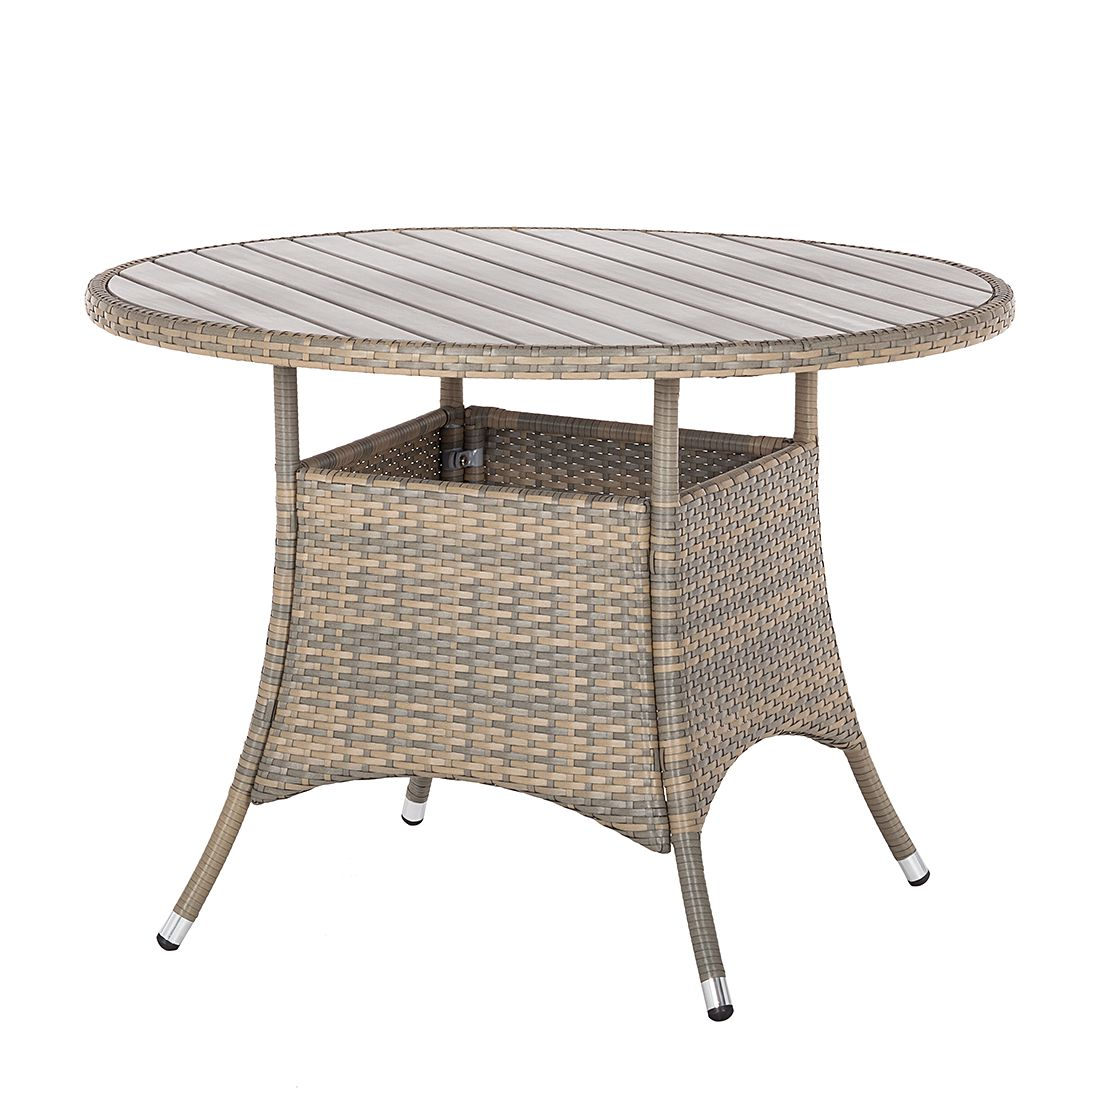 Table de jardin Bena